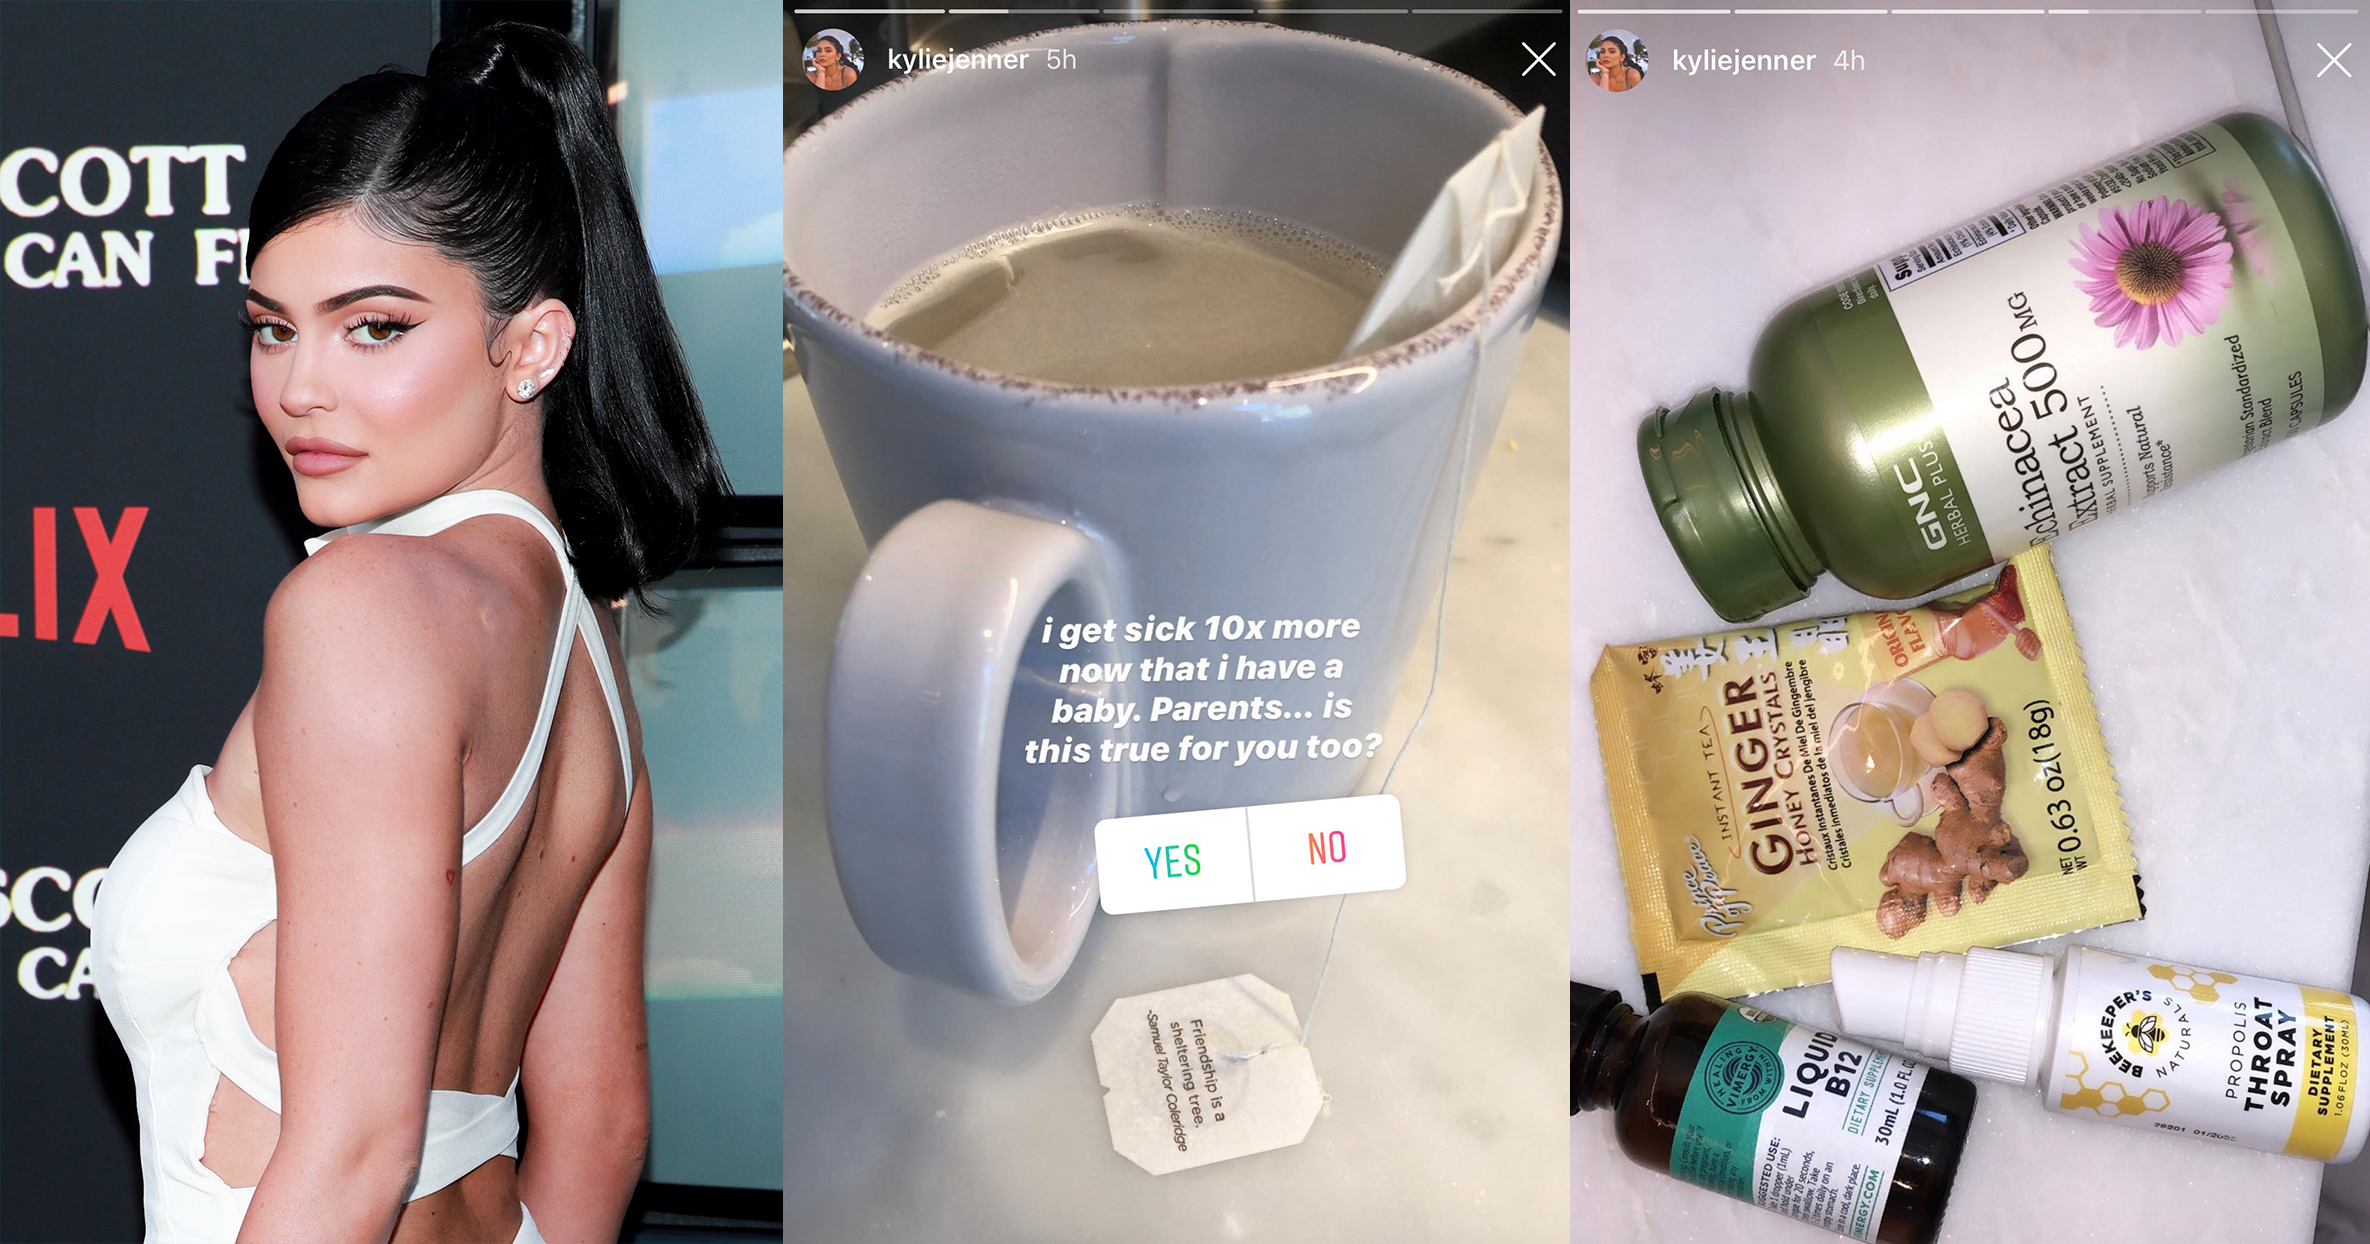 Photo of Kylie Jenner next to screenshots of cup of tea and cold remedies